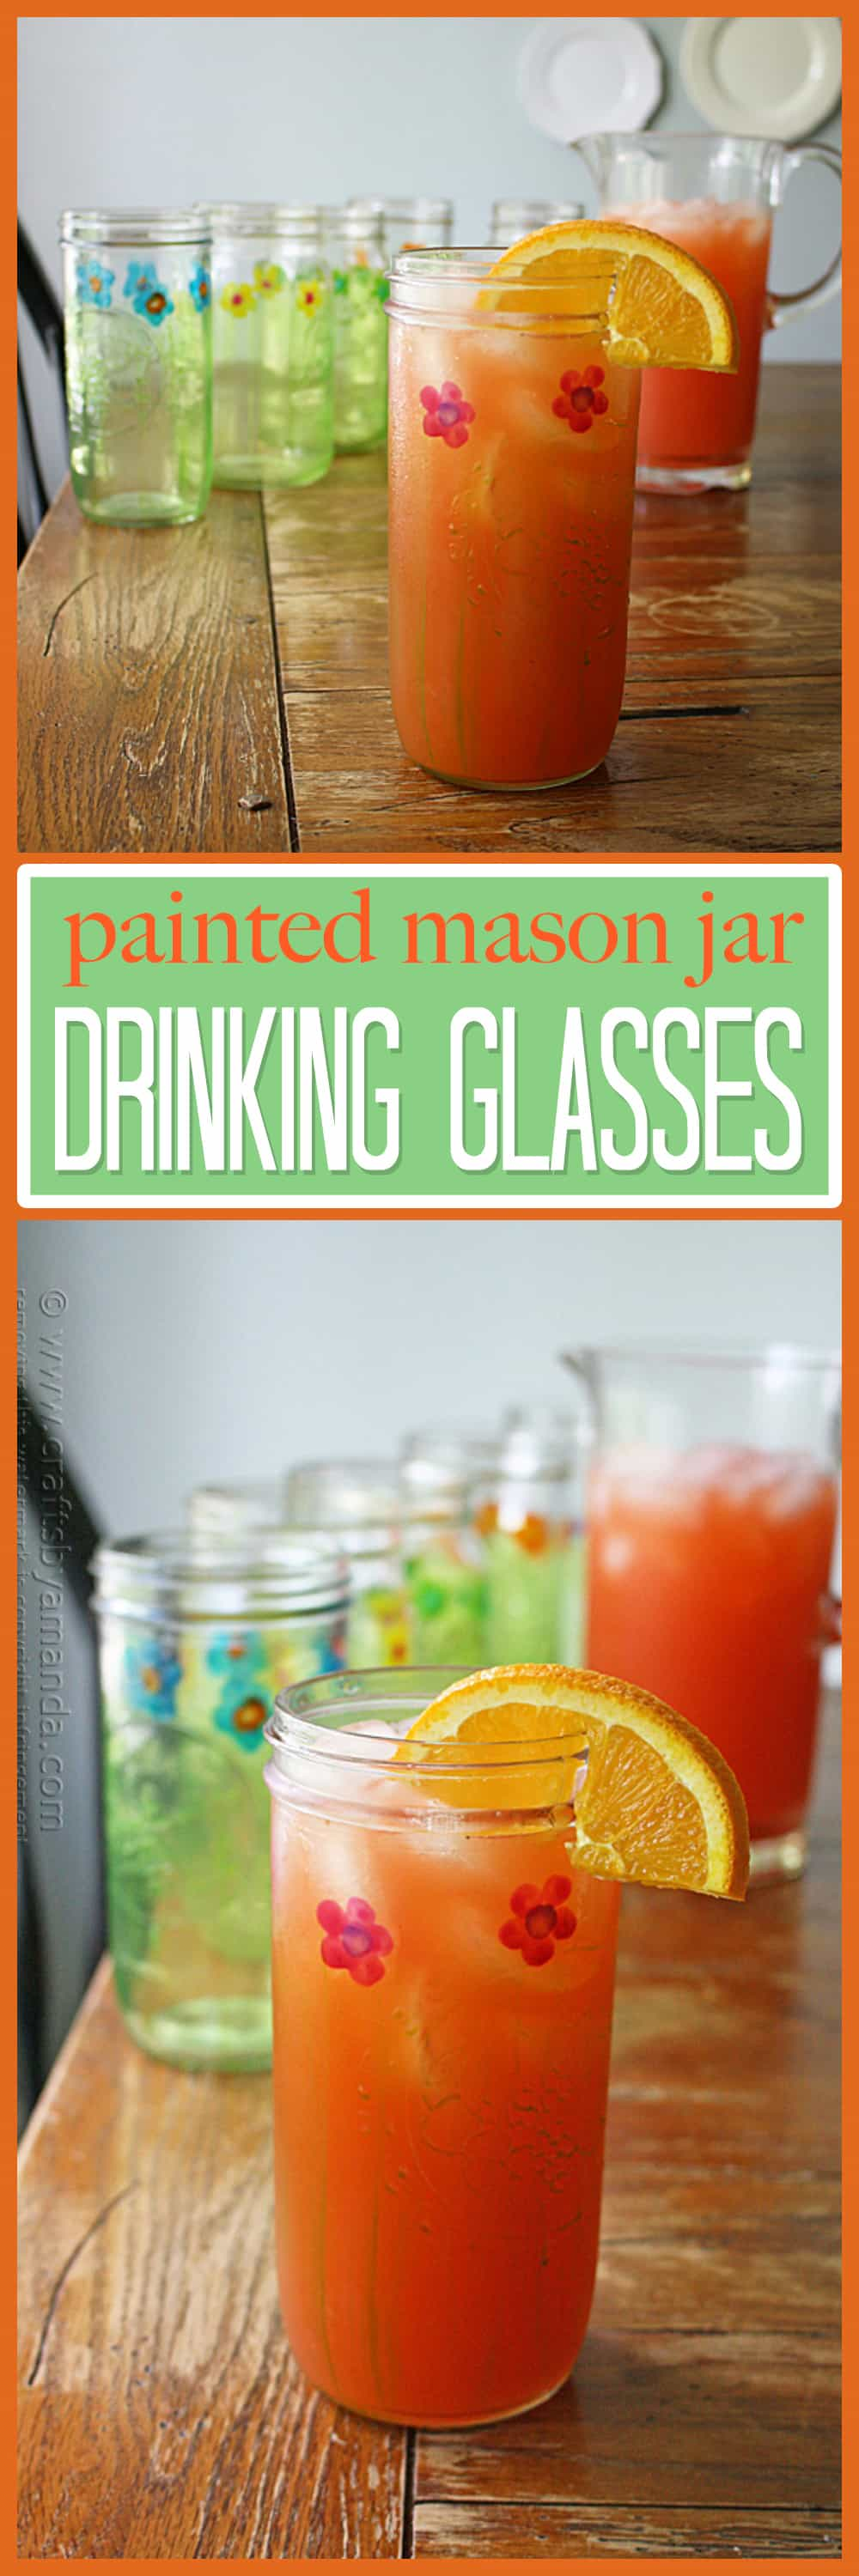 Make your own pretty painted mason jar glasses today!